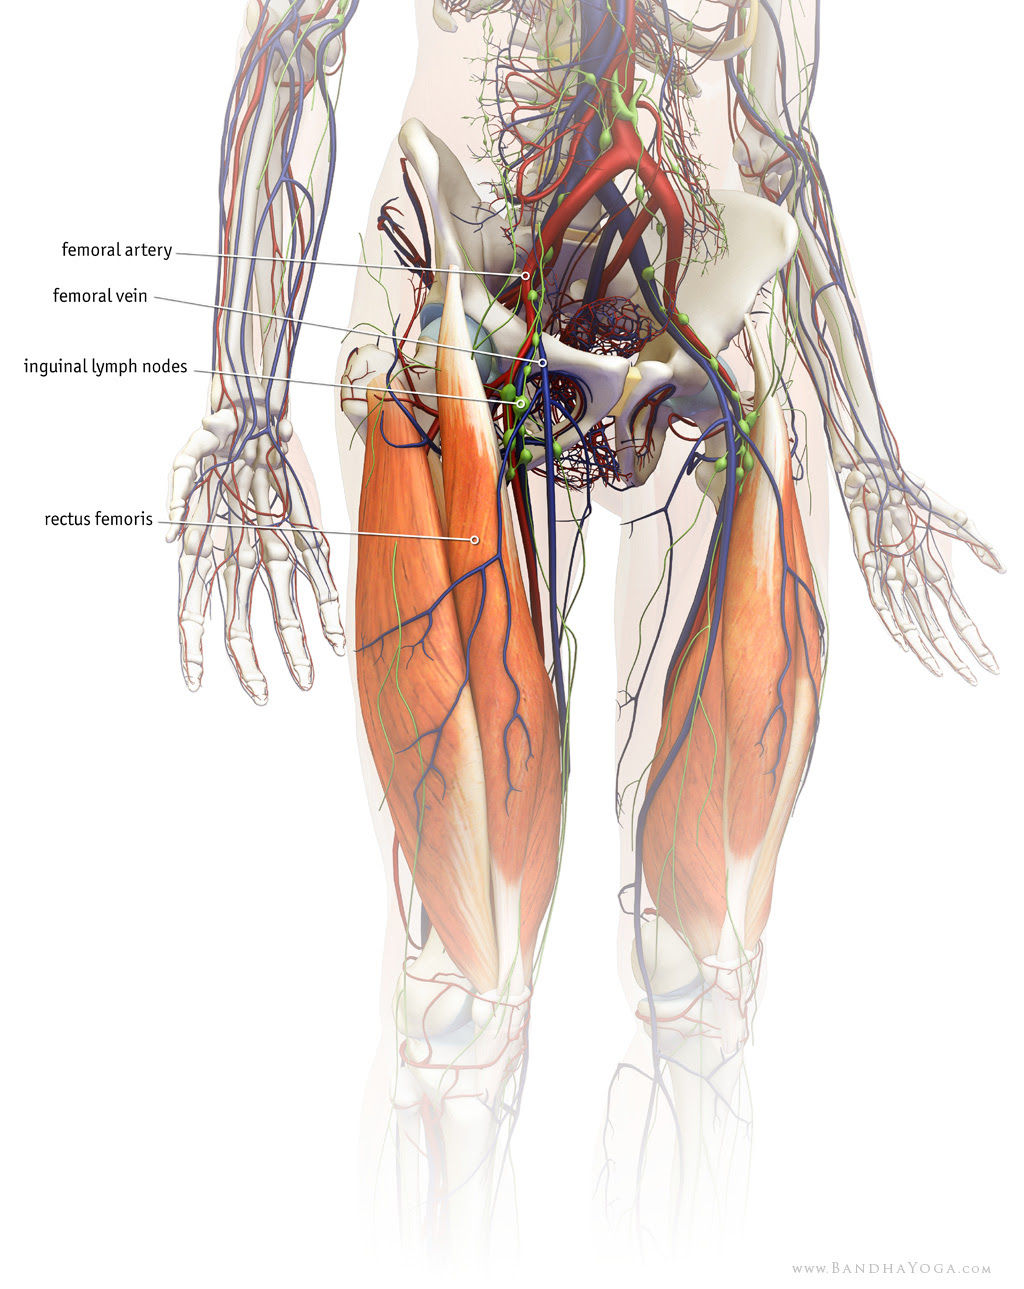 rectus femoris in relation to femoral artery, vein and inguinal lymph nodes